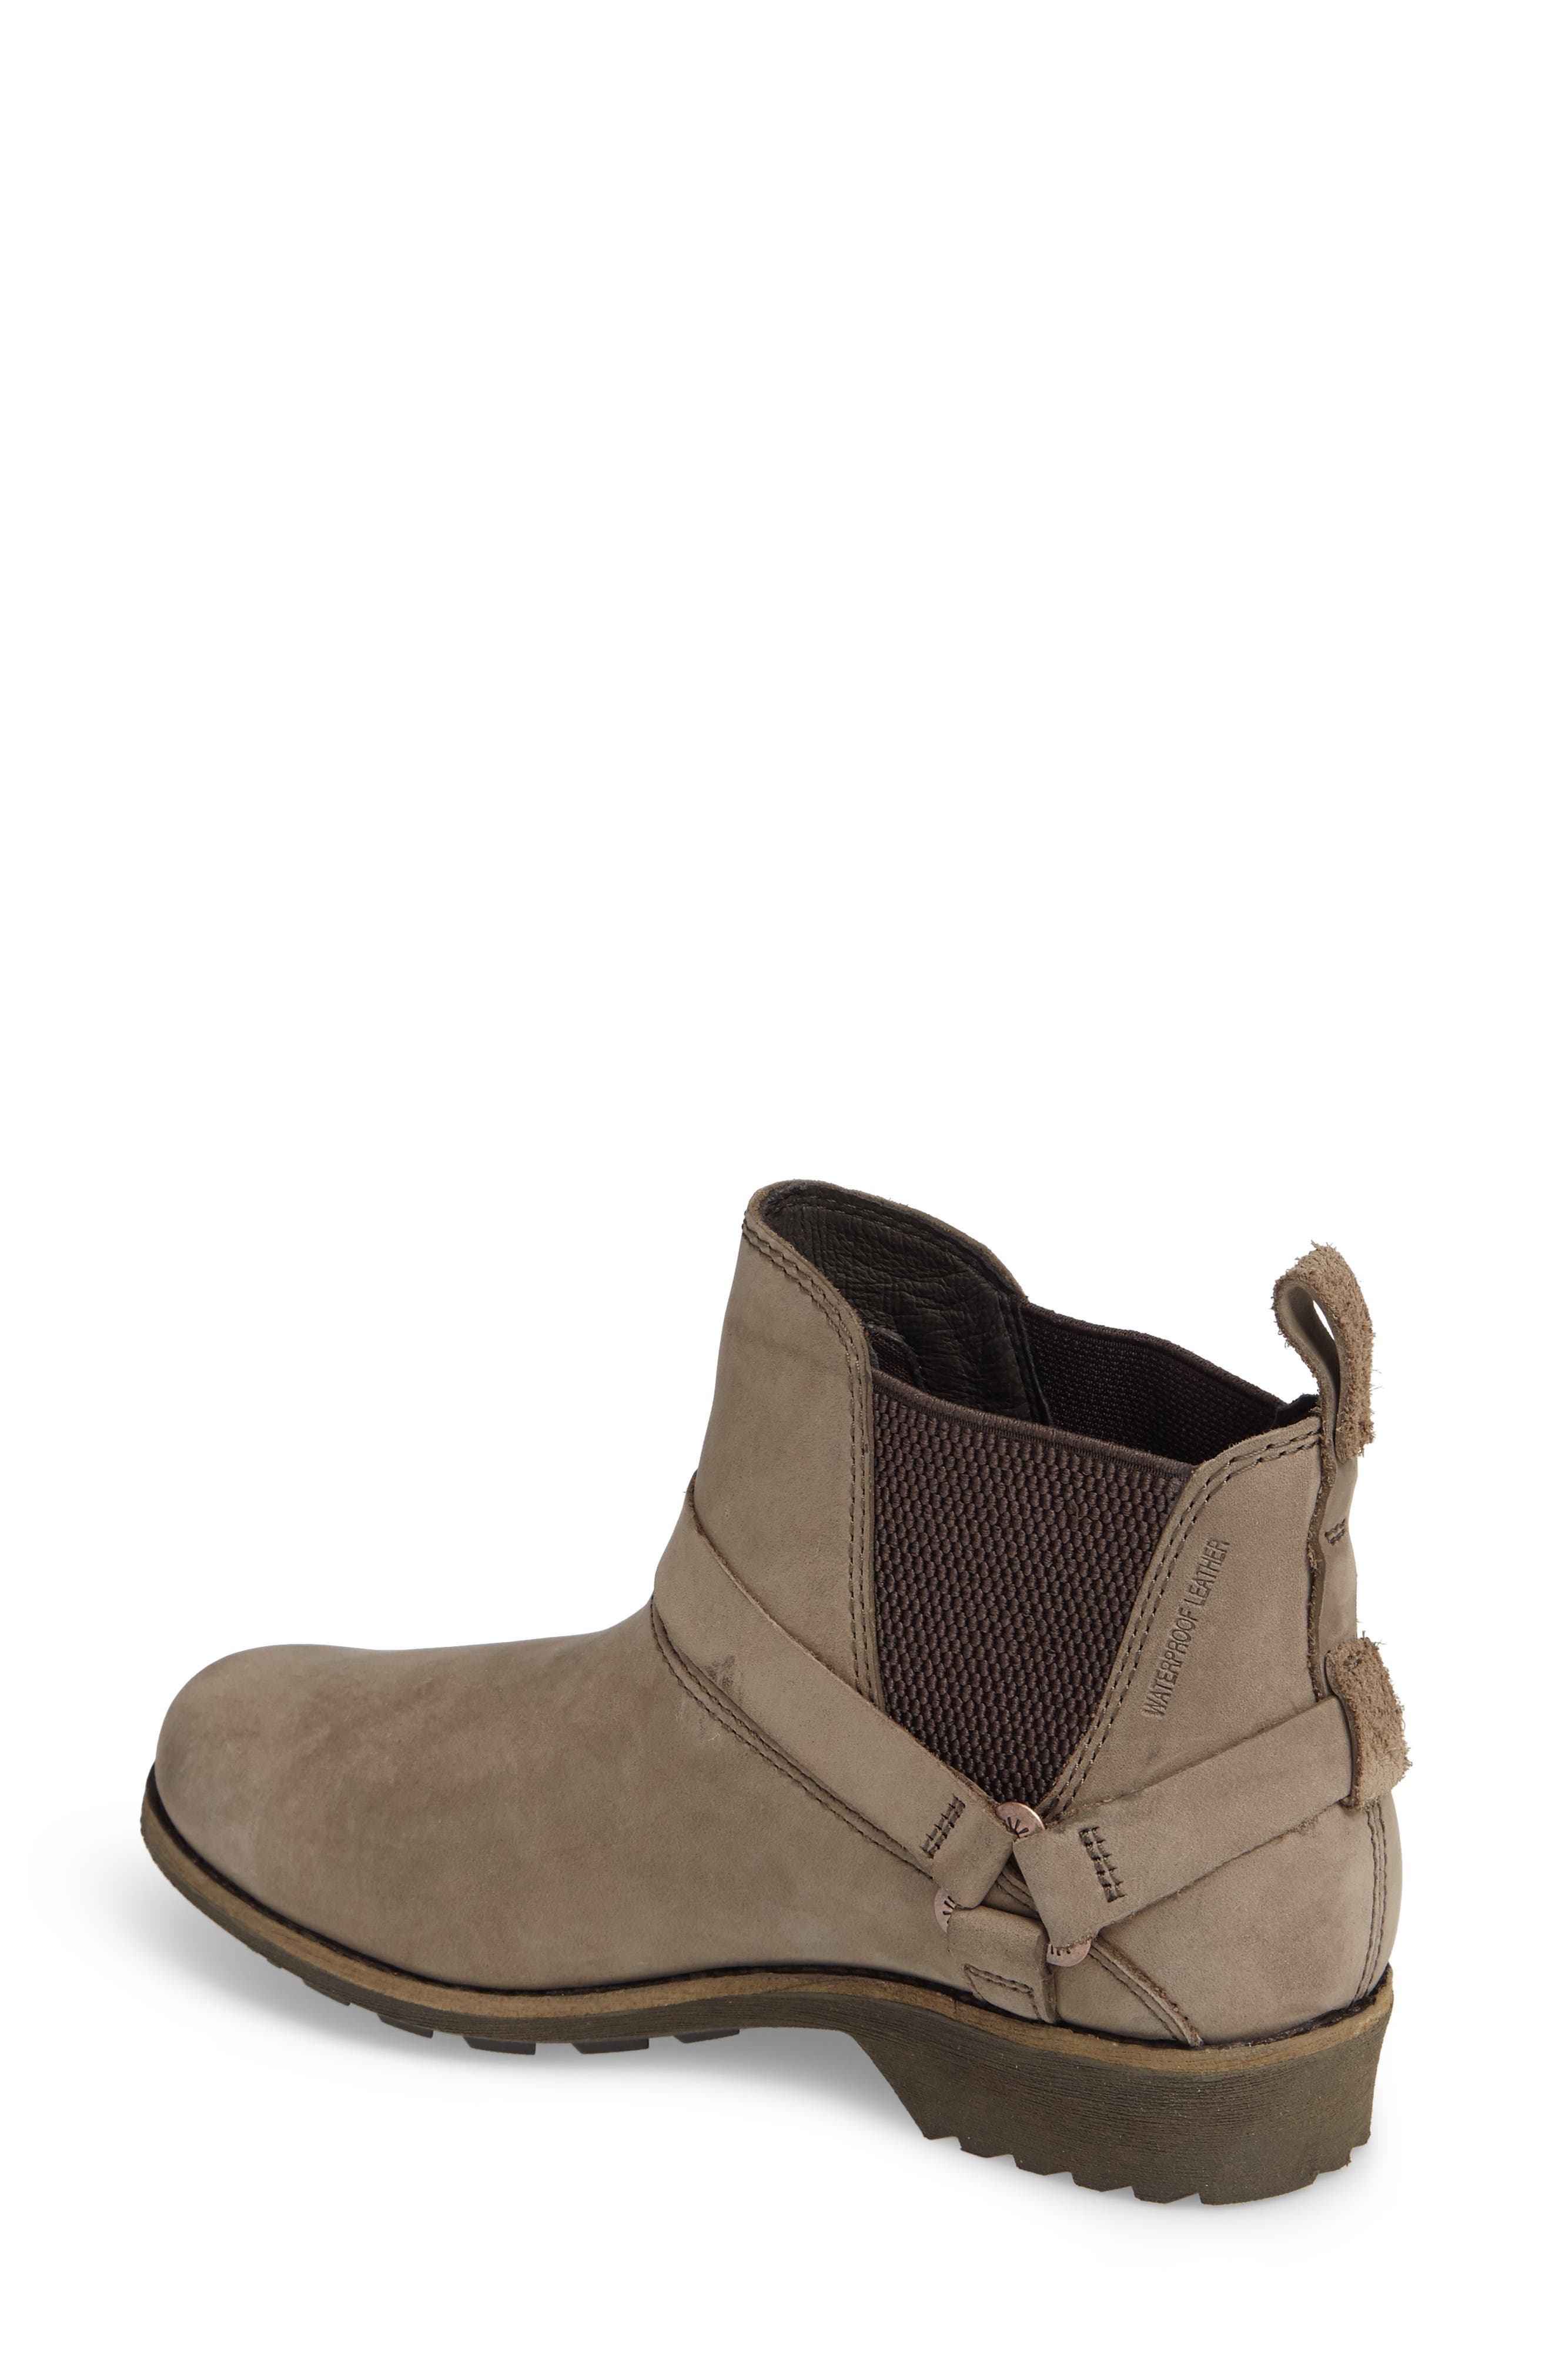 Dina La Vina Dos Waterproof Chelsea Boot,                             Alternate thumbnail 2, color,                             Bungee Cord Leather